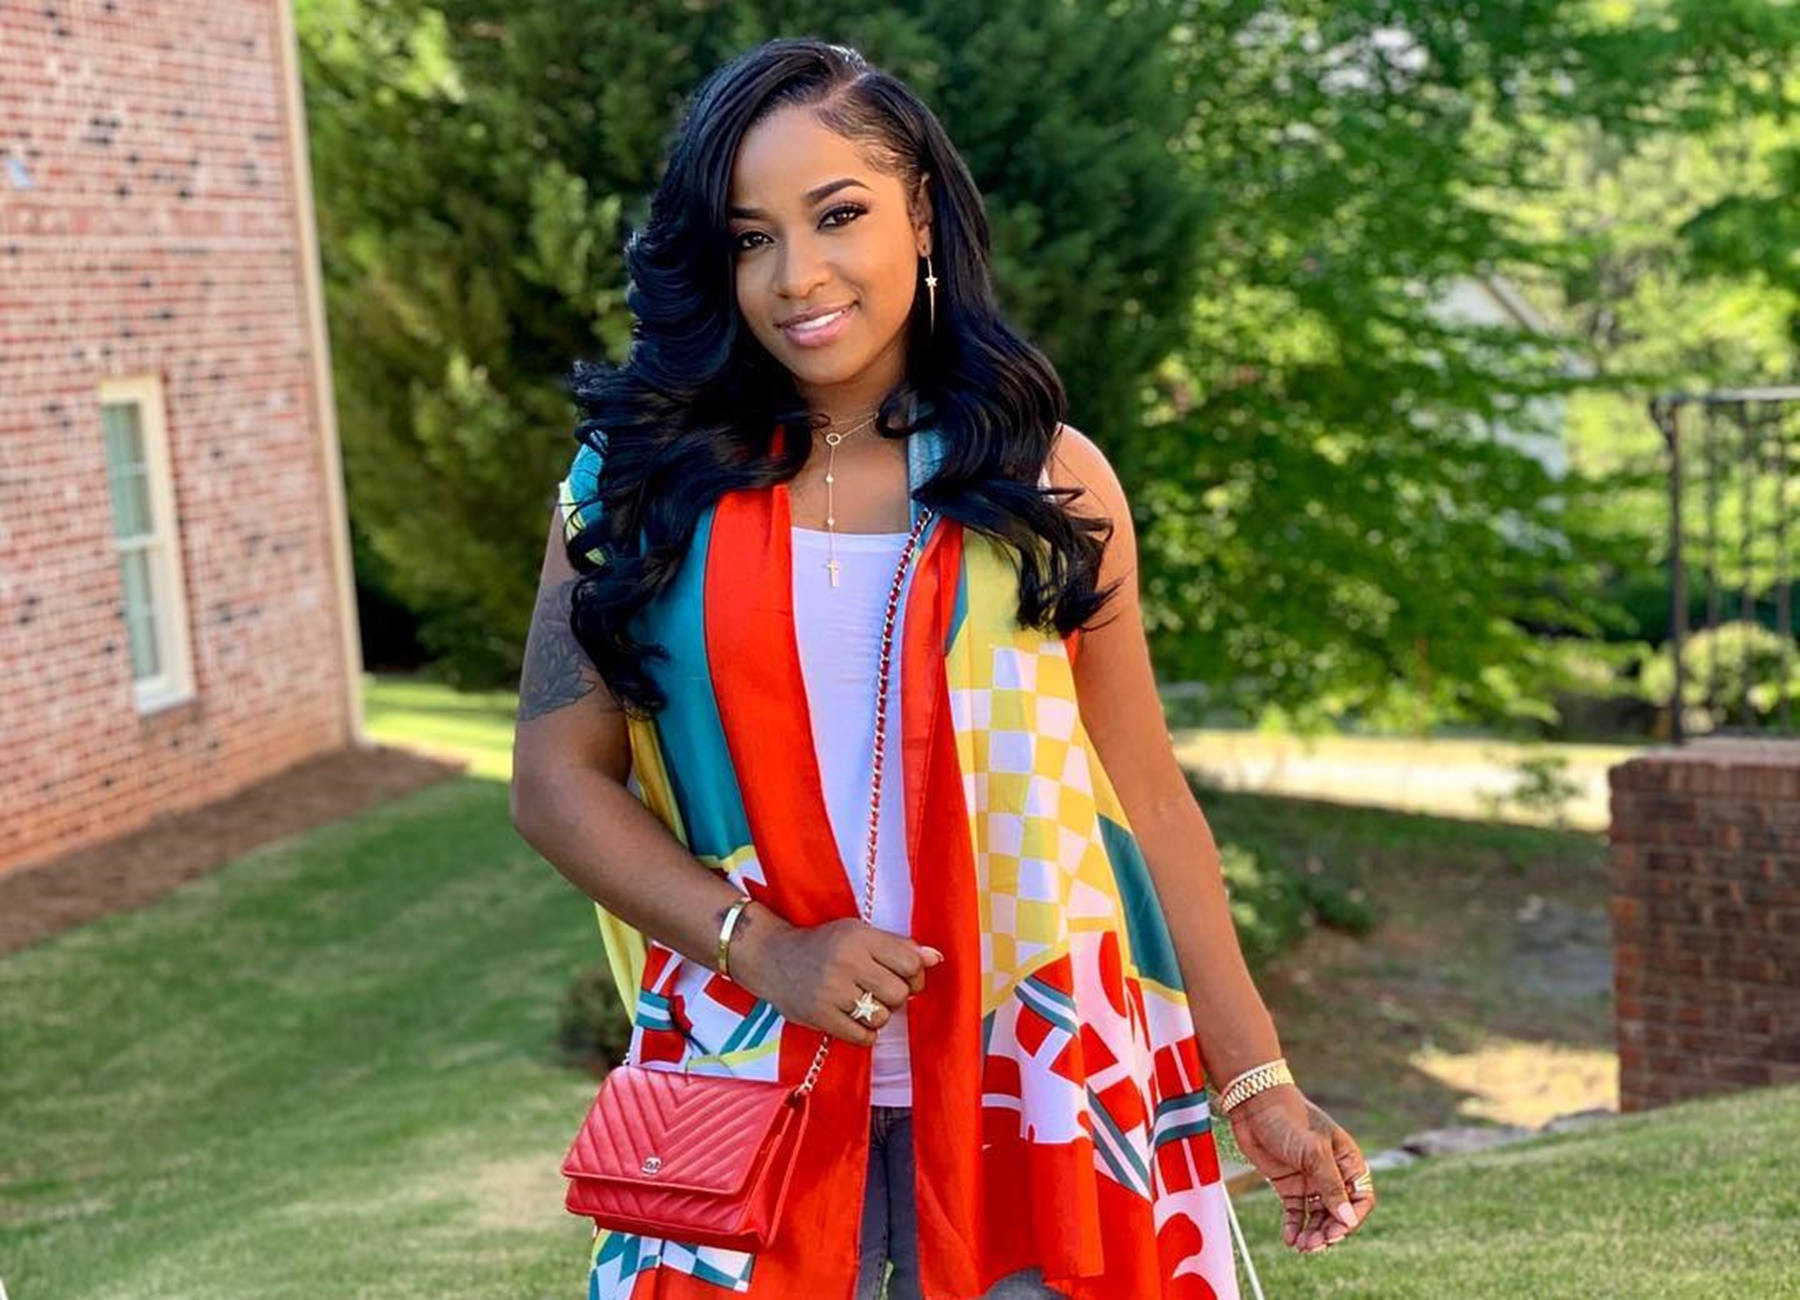 Toya Wright Attended A Ball And She Looked Amazing - See The Videos